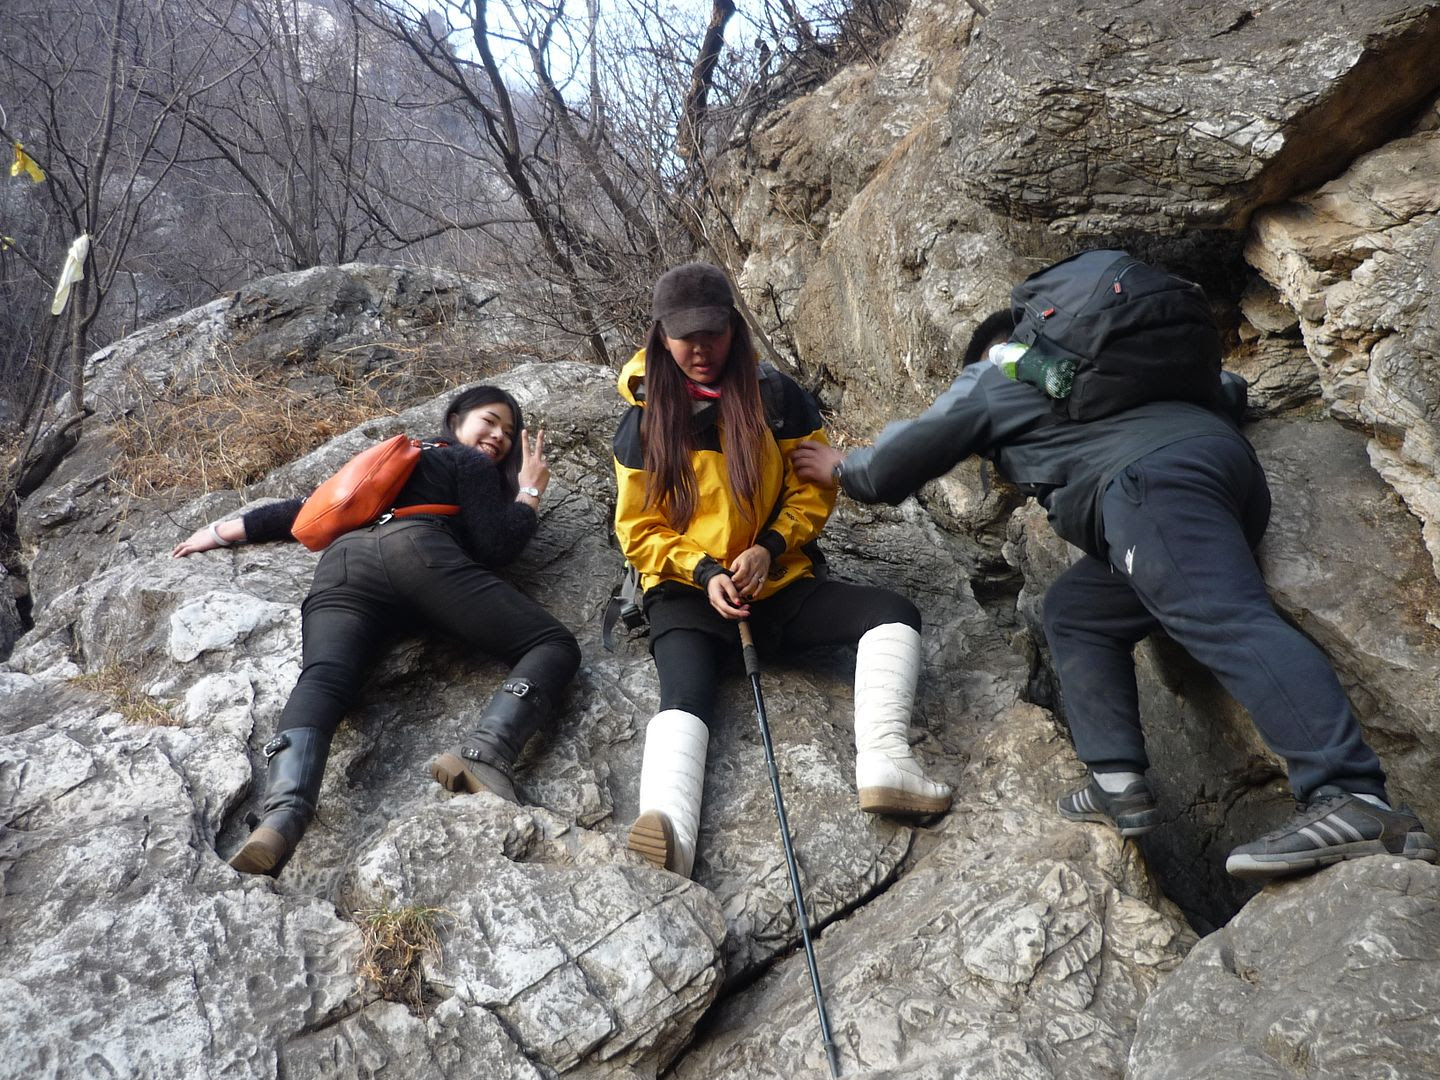 Beijing Friends Climbing During the Great Wall Hike photo 2014-03-08115041_zps81eff4c2.jpg